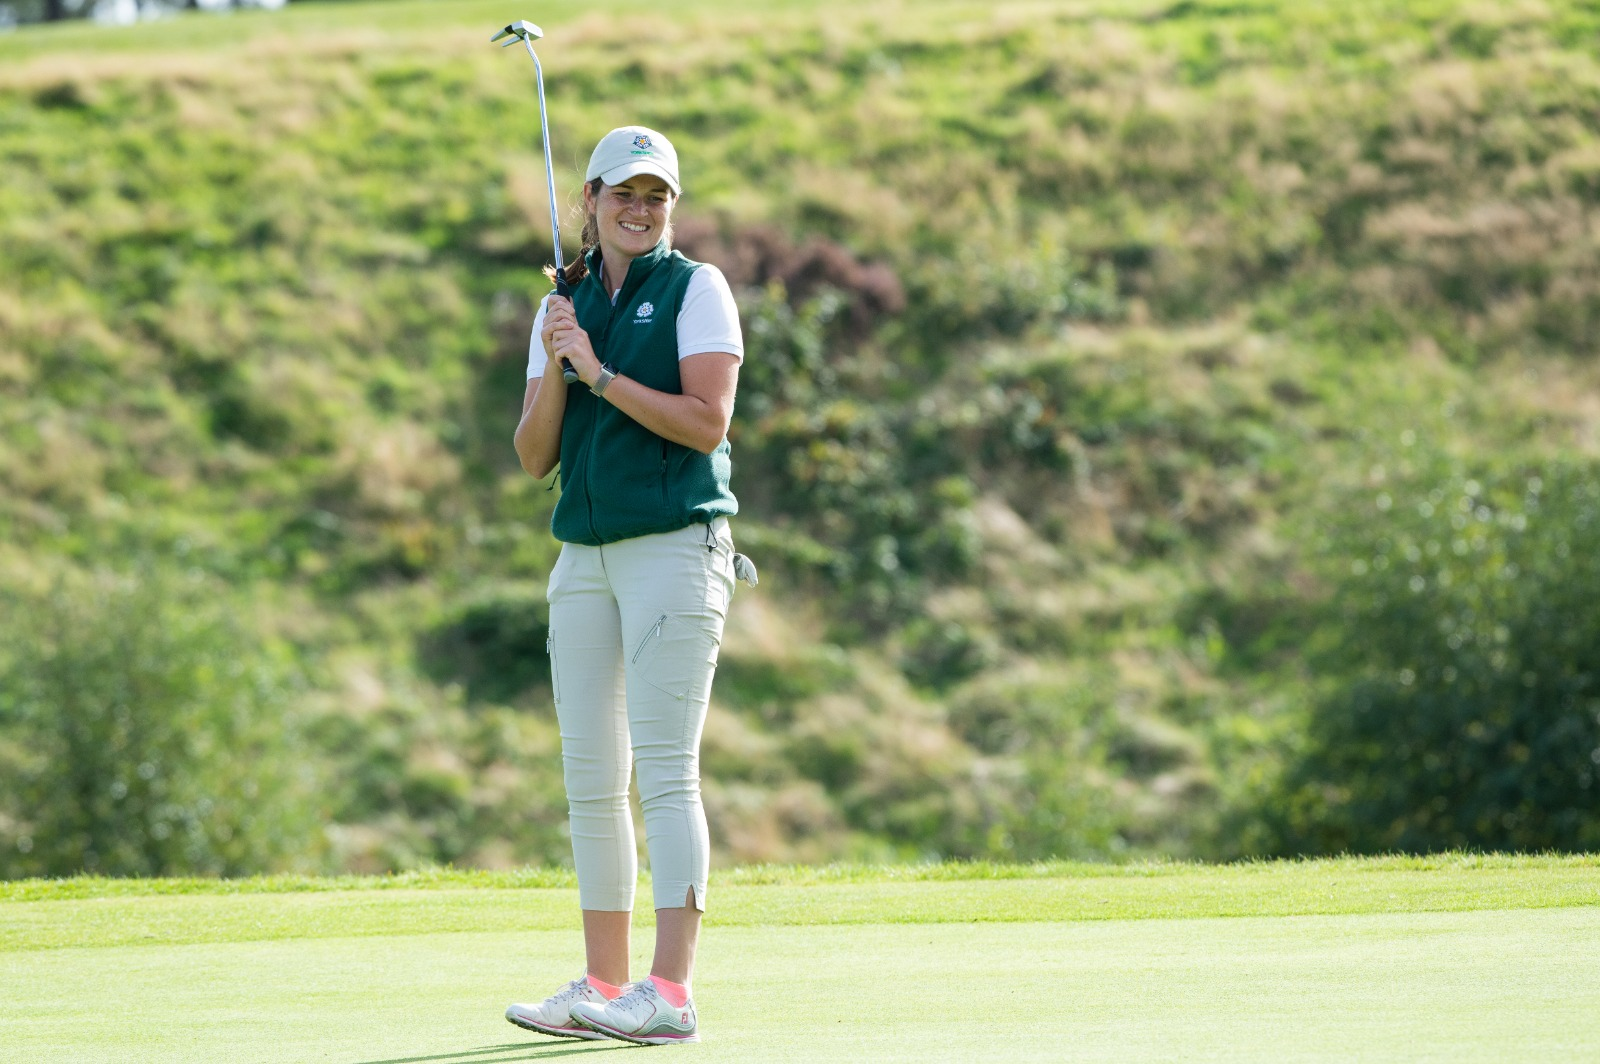 Melissa Wood agonises after a missed putt